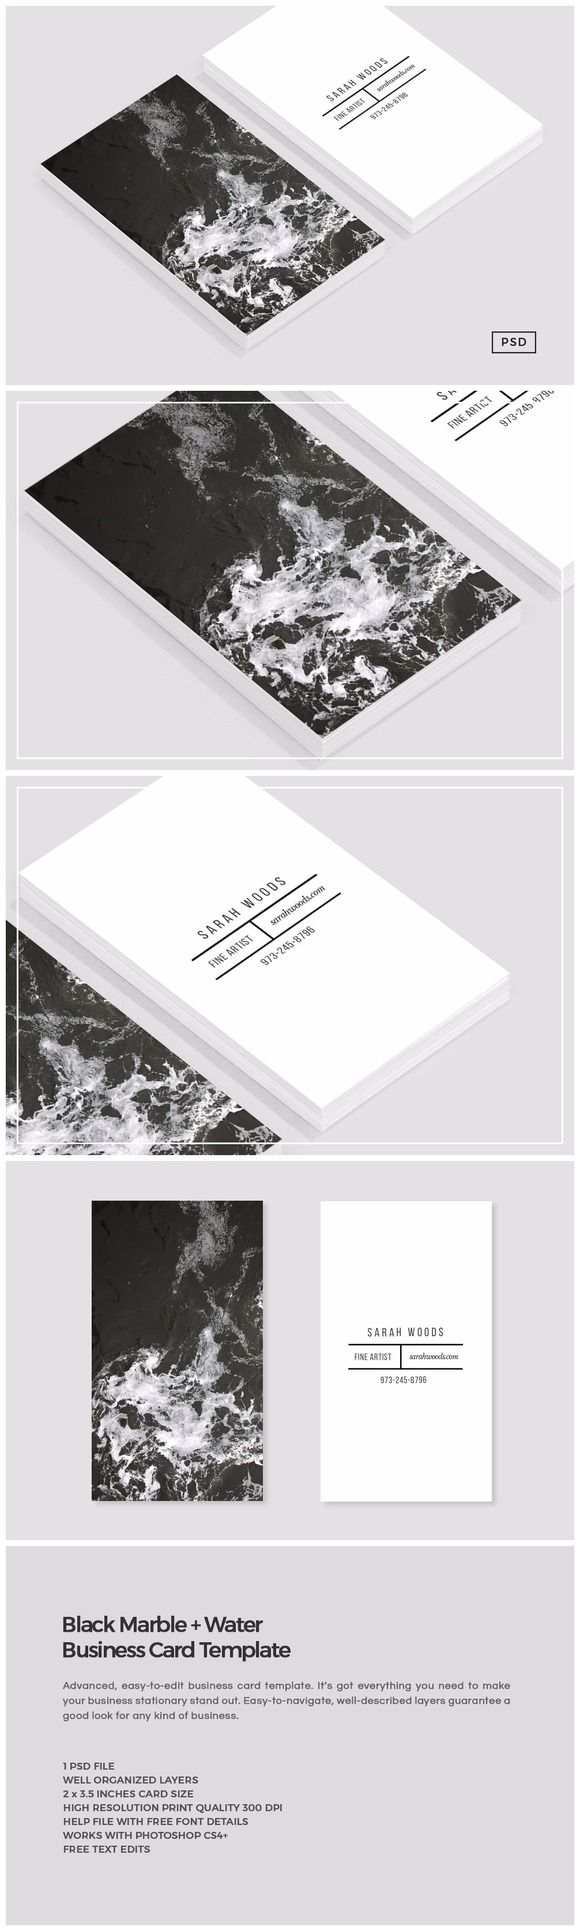 Best 25 business card design ideas on pinterest business cards black marble business card template by design co on creativemarket reheart